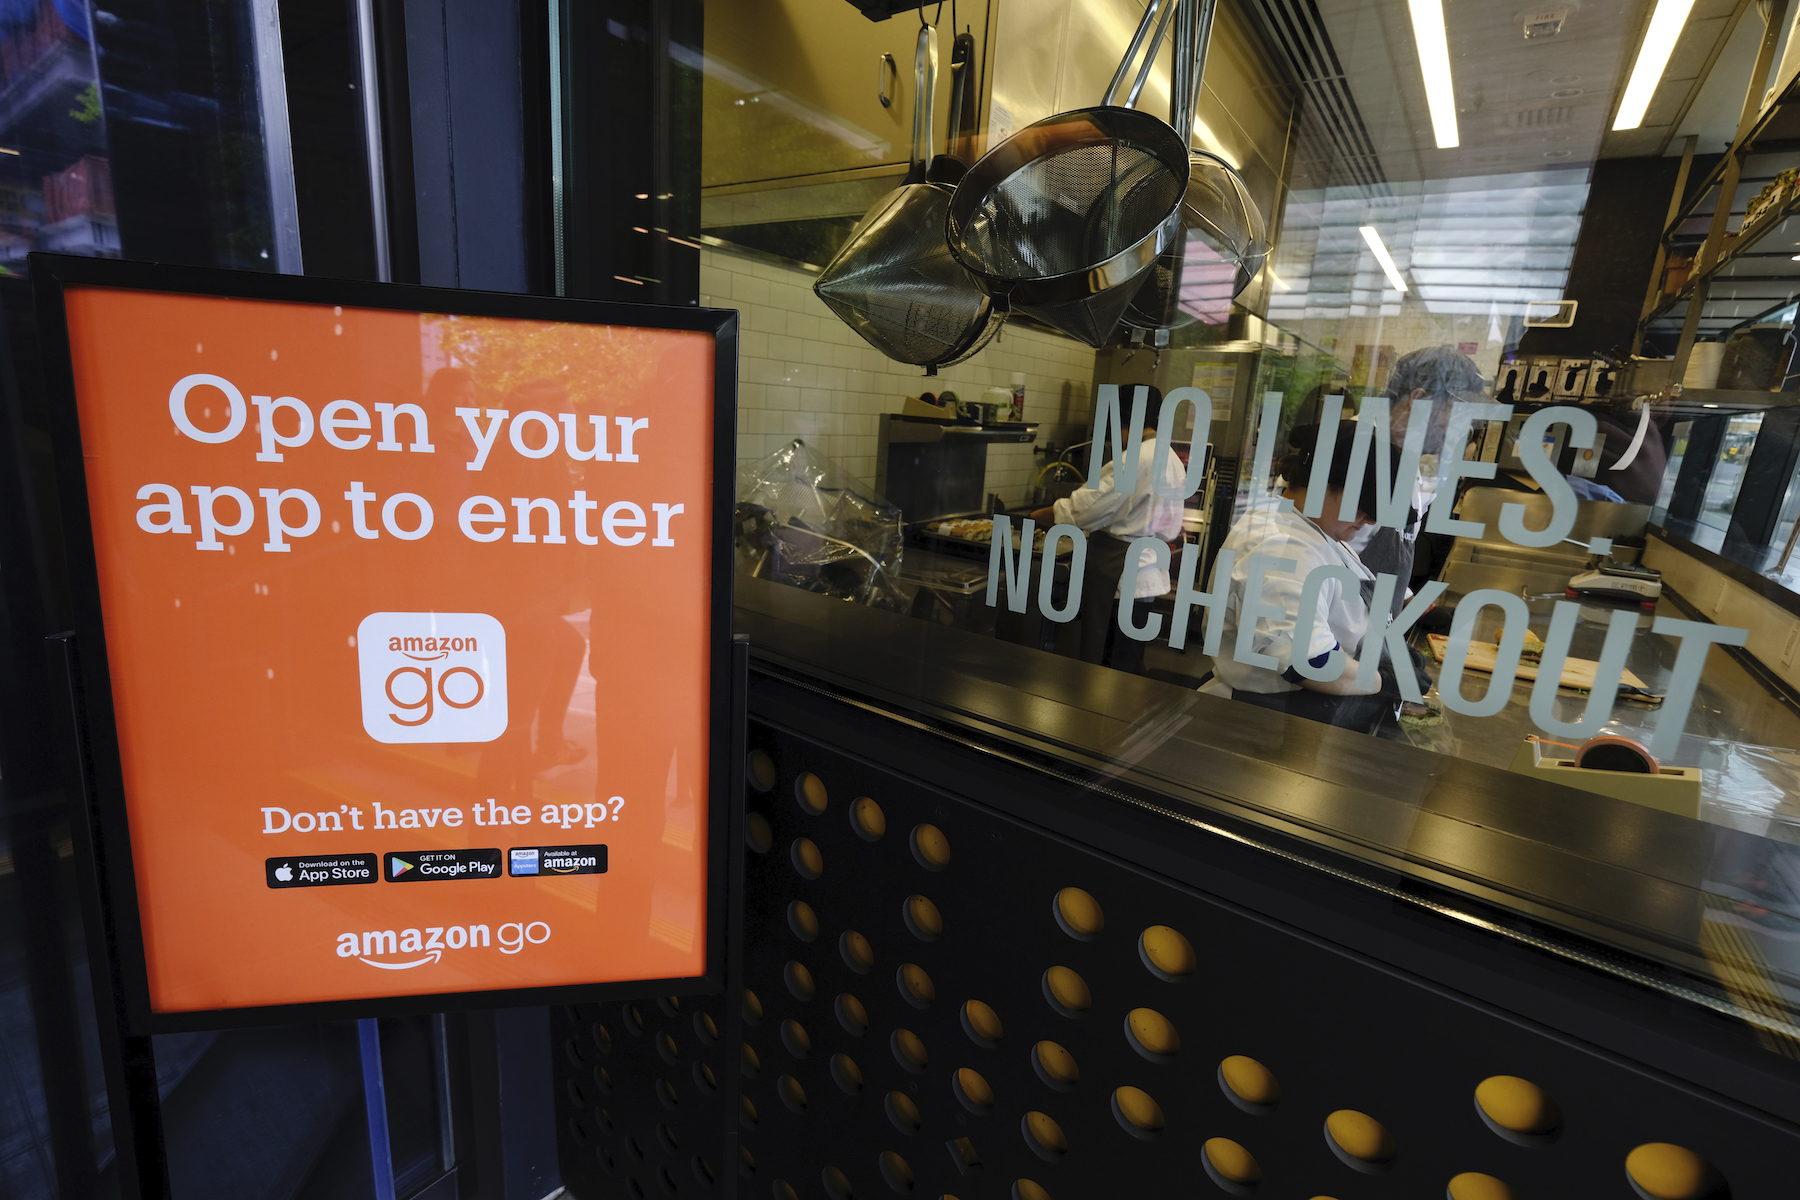 Employees make ready-to-eat food at the original Amazon Go convenience store in Seattle.